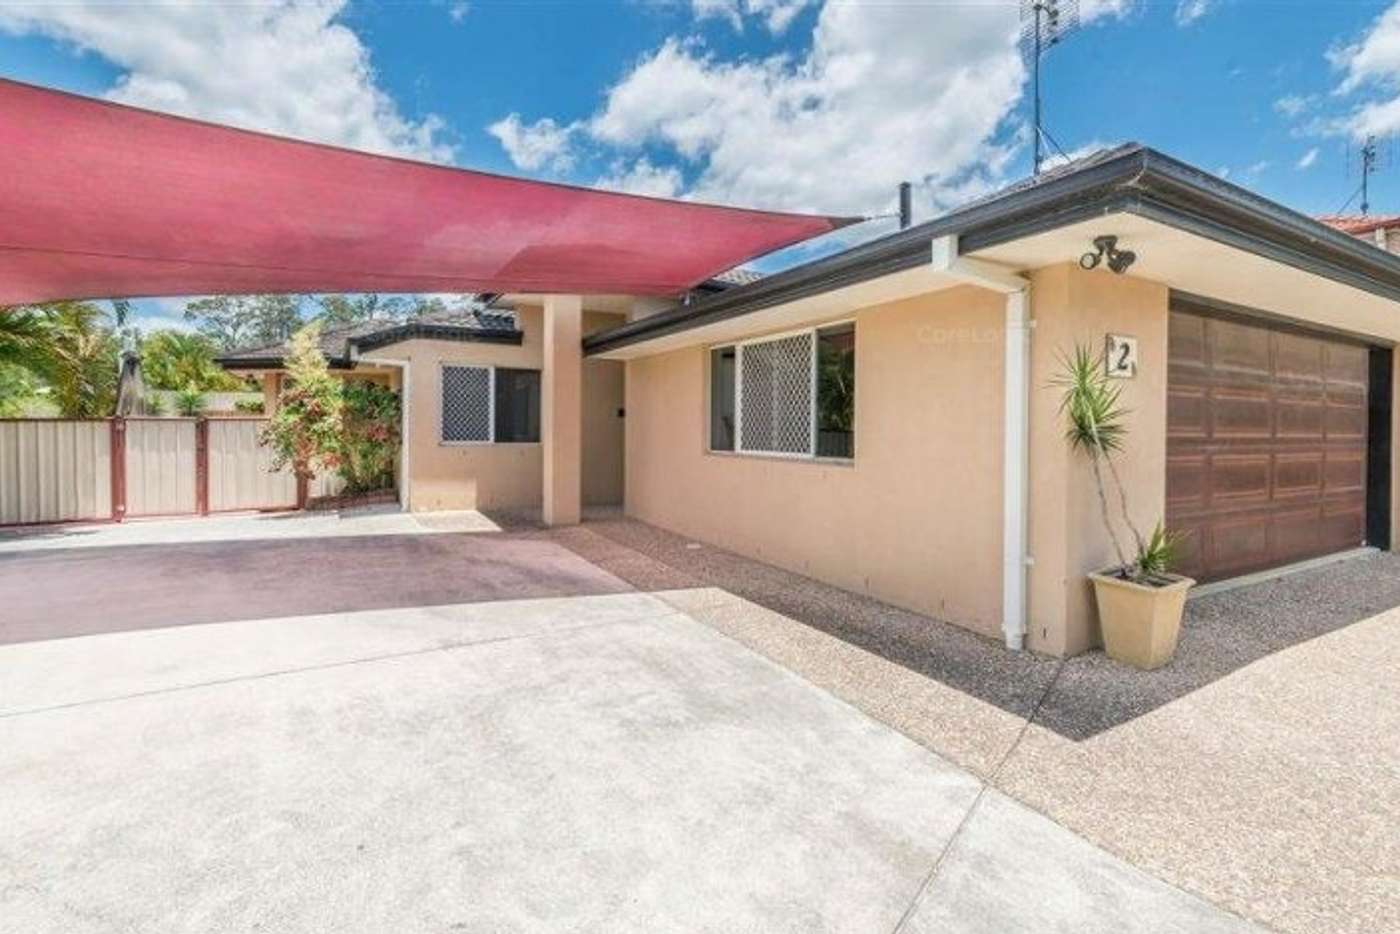 Main view of Homely house listing, 2 Sirec Way, Burleigh Heads QLD 4220